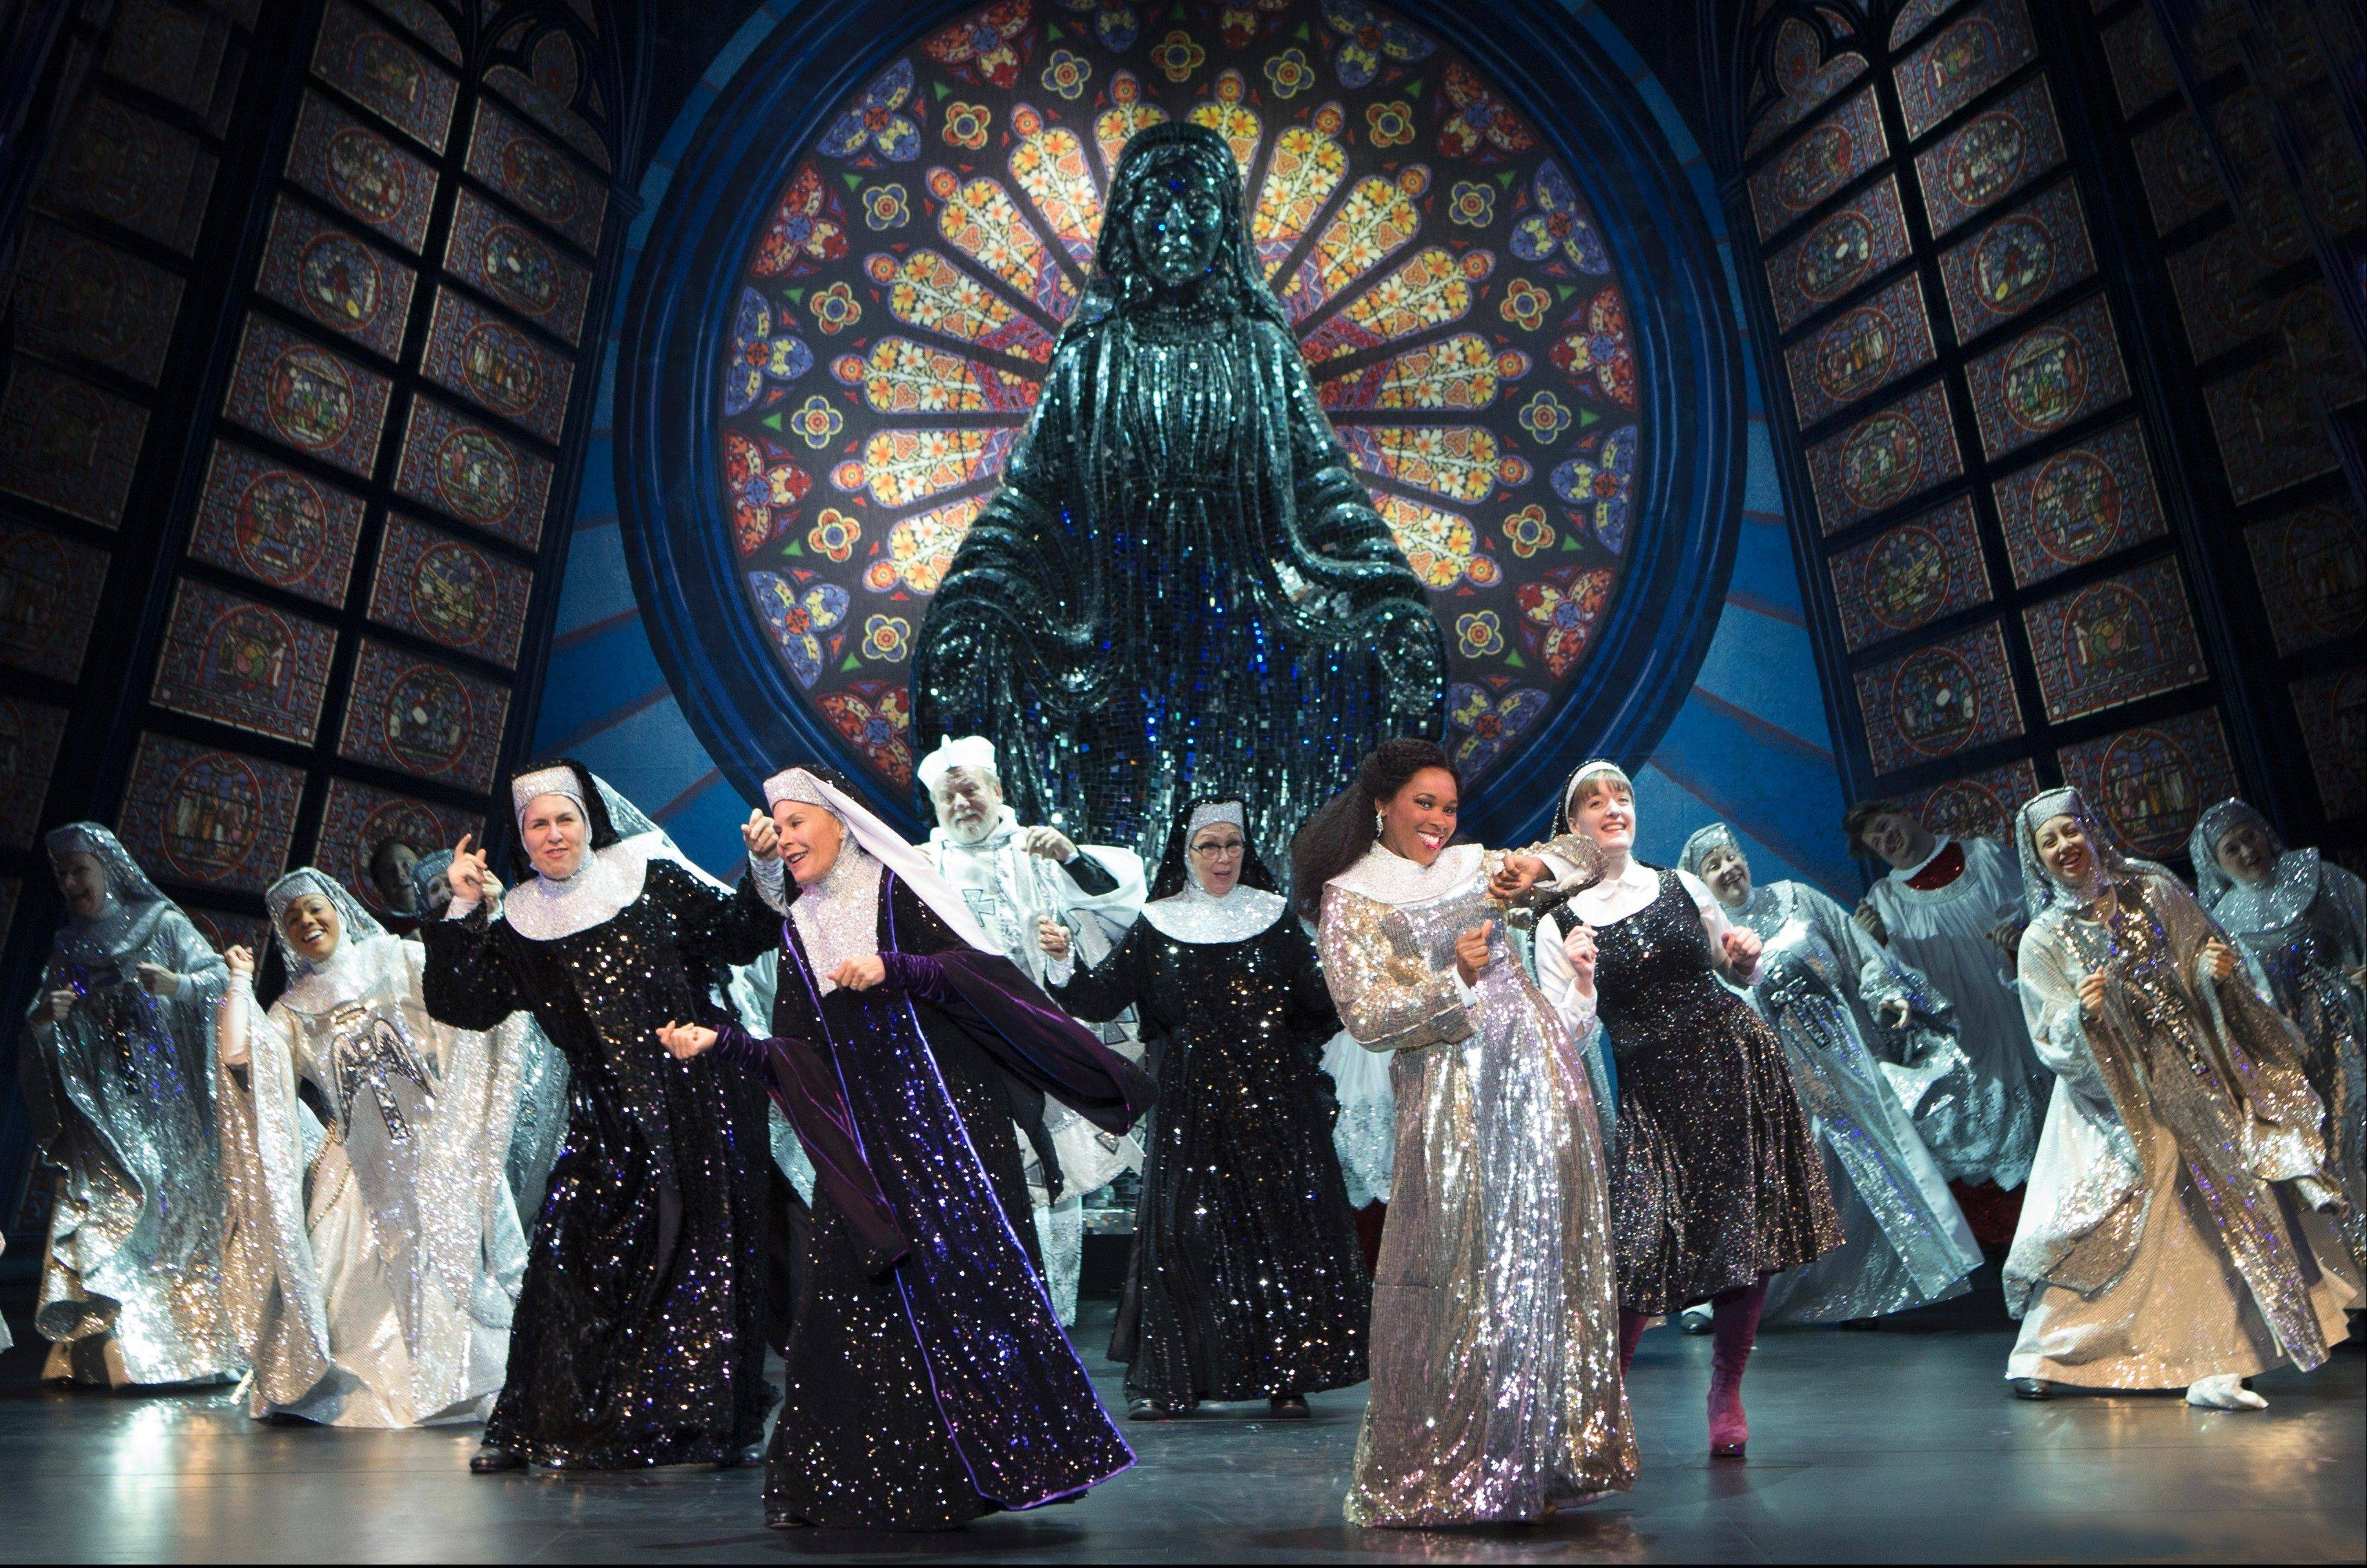 """Sister Act"" draws to a close with a sparkly finale. The national tour of ""Sister Act"" plays at the Auditorium Theatre of Roosevelt University in Chicago from Tuesday, Nov. 13, through Sunday, Dec. 2."